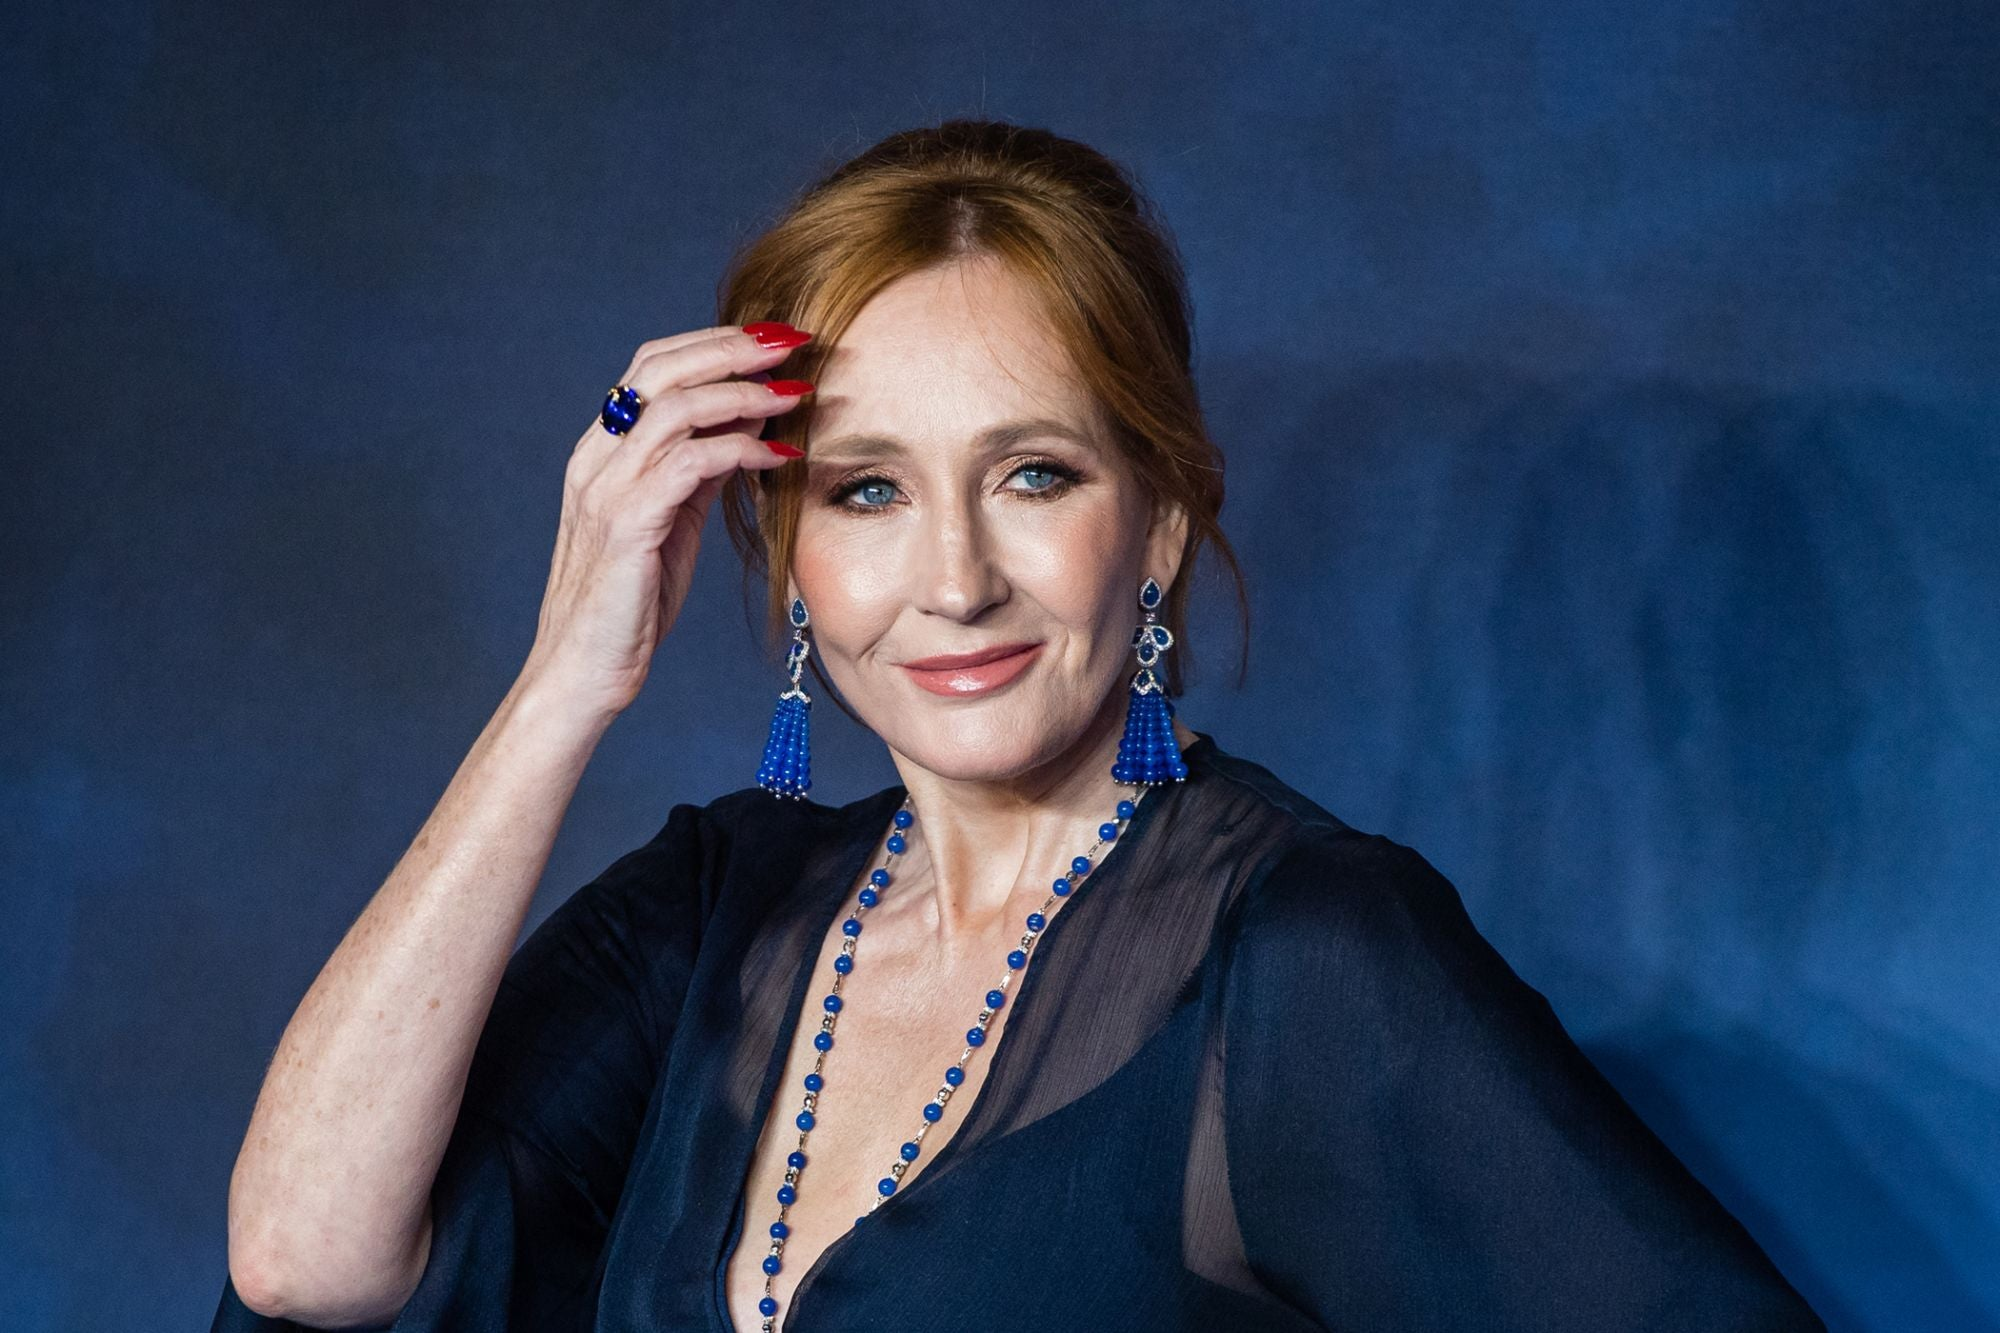 9 Quotes on Success and Failure from J.K. Rowling